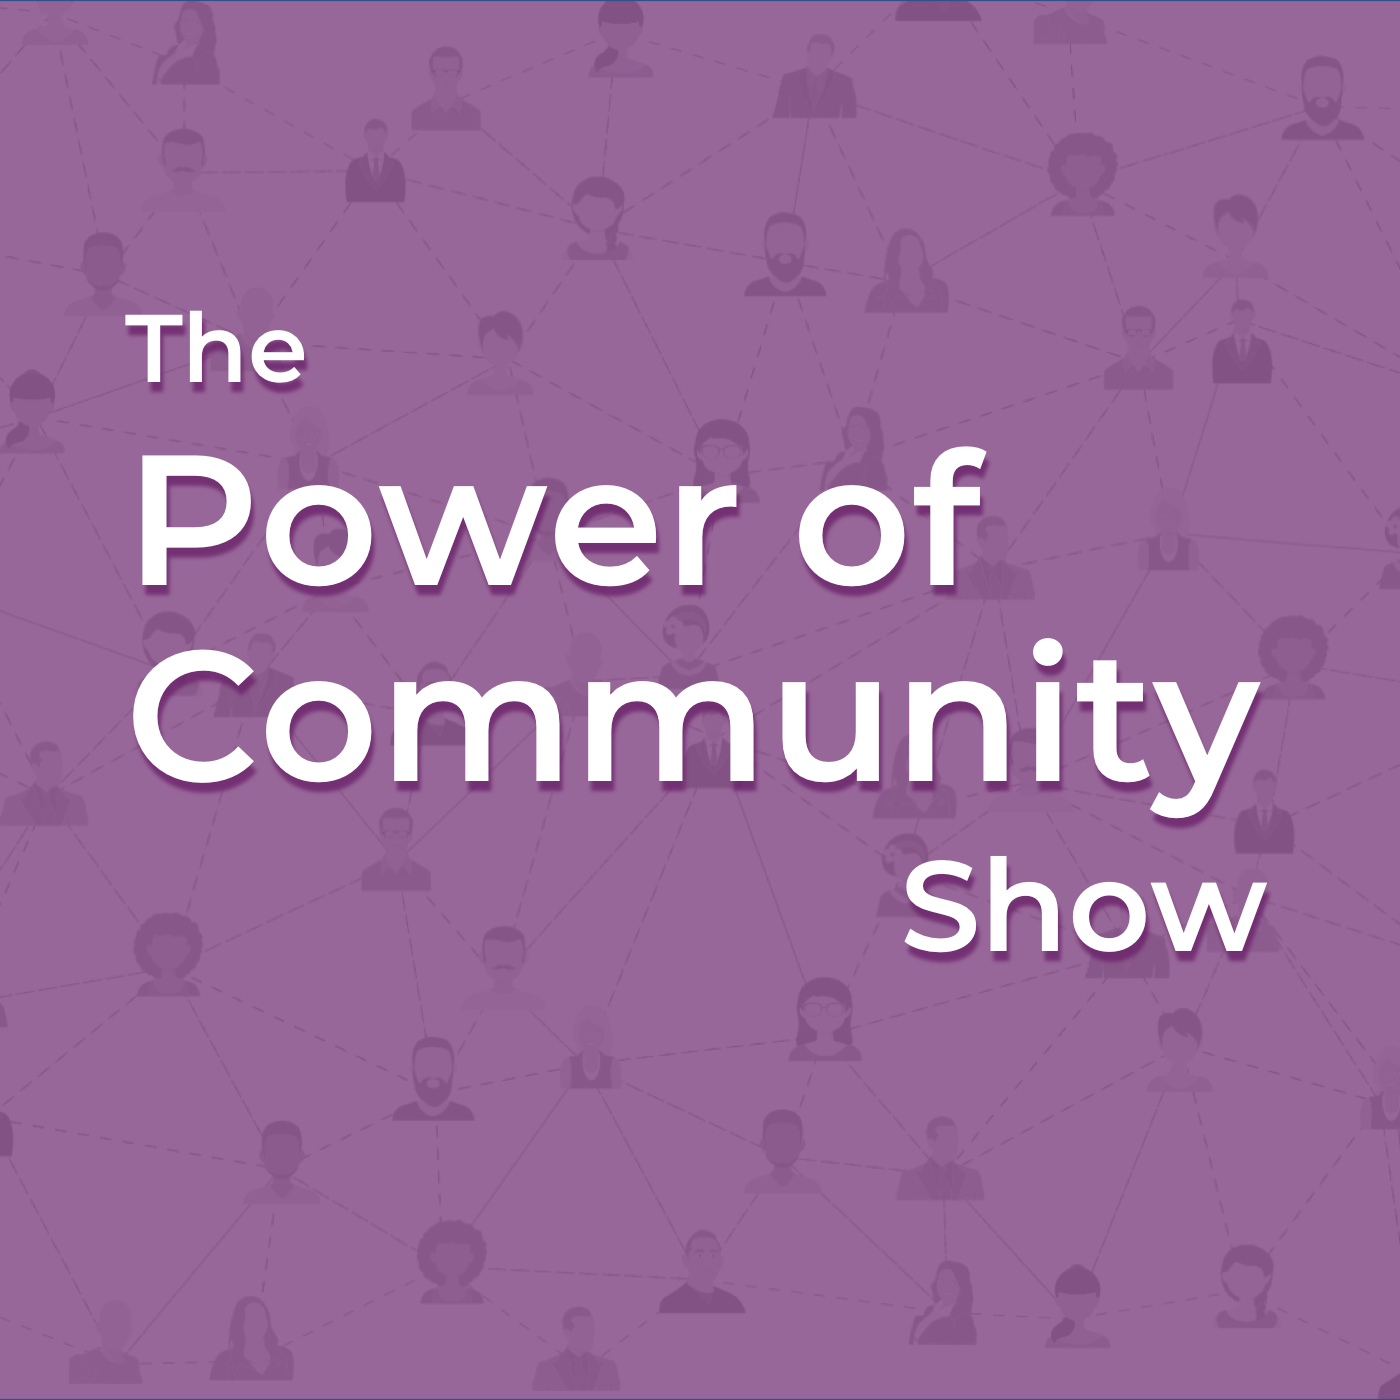 The Power of Community Show show art